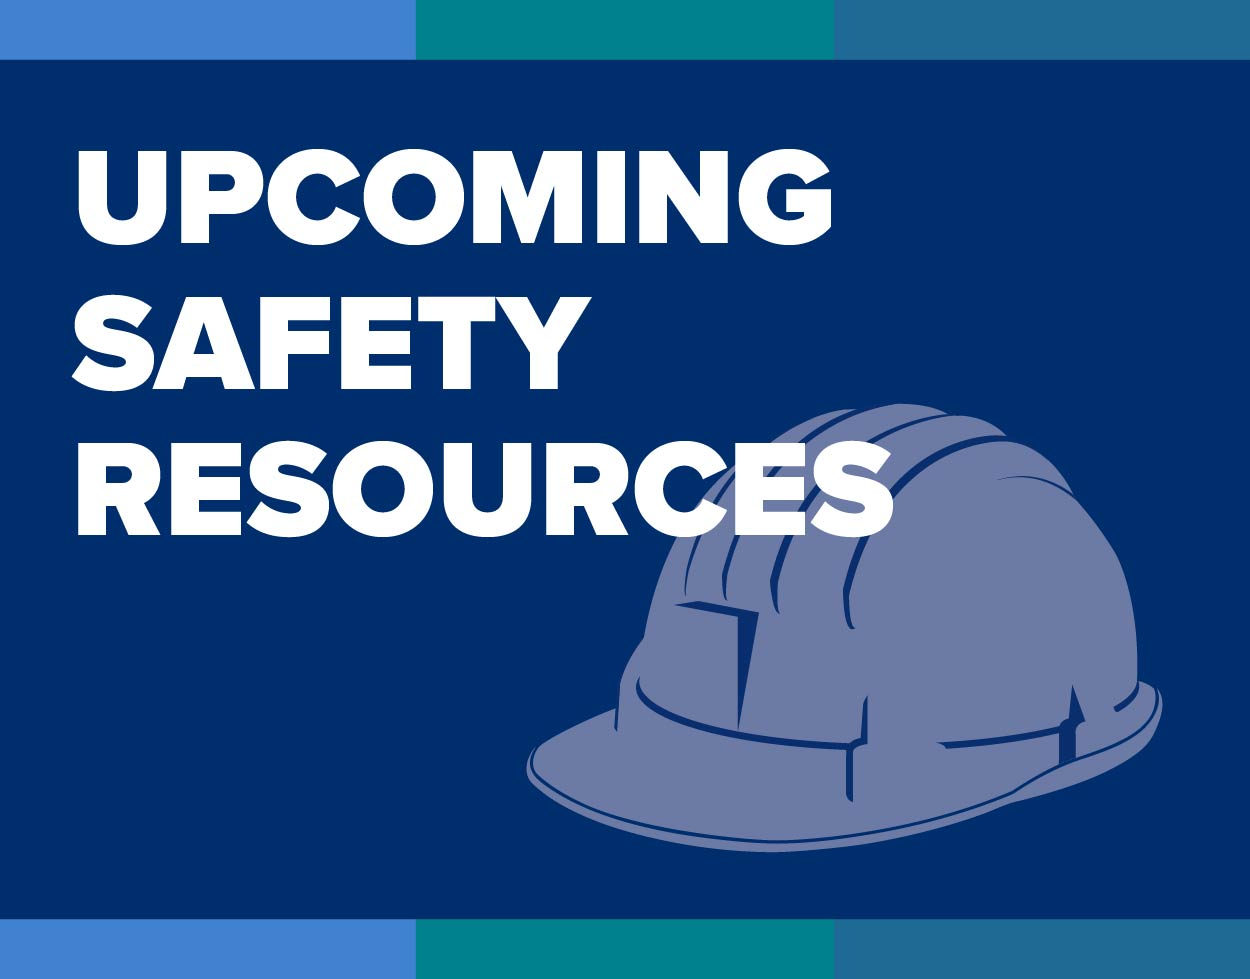 Upcoming Safety Resources